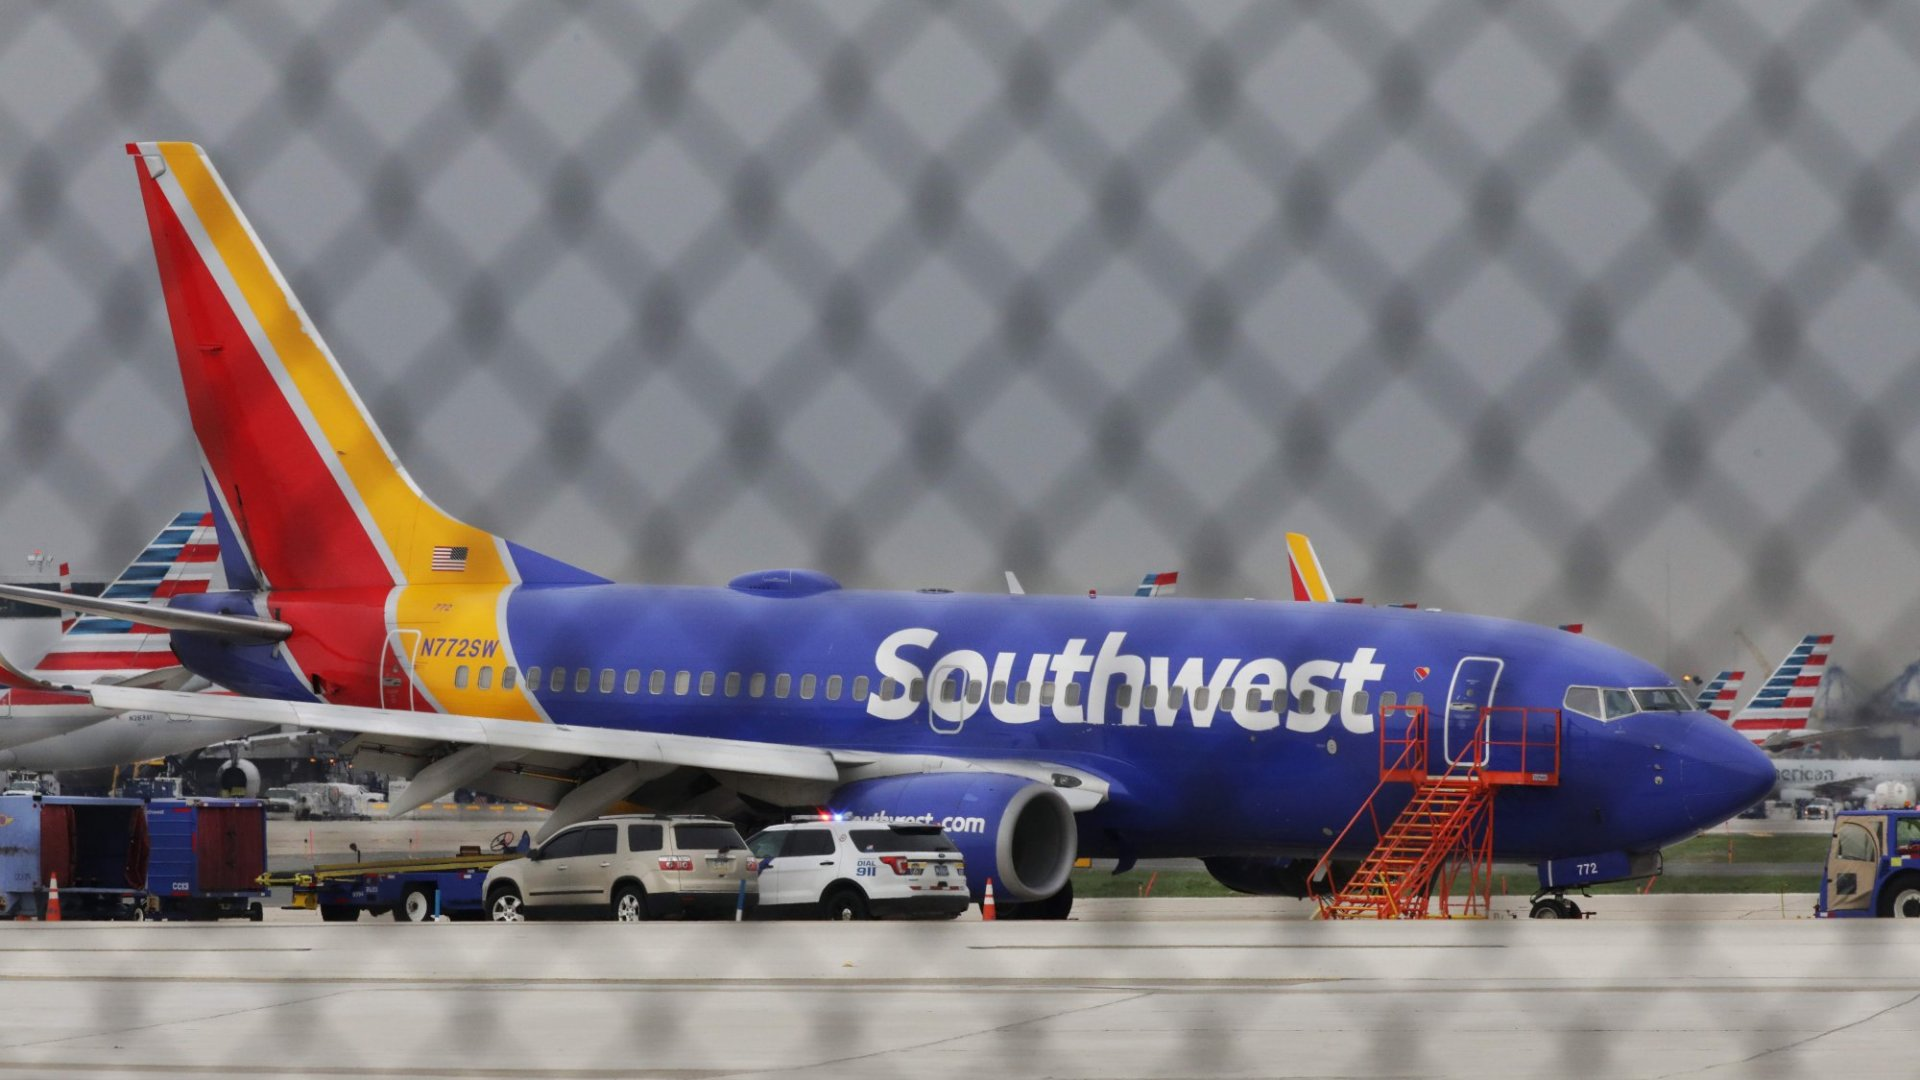 Southwest, Delta, and United All Had Emergency Landings Today. Here's Why They Should Make You Feel Great About Flying